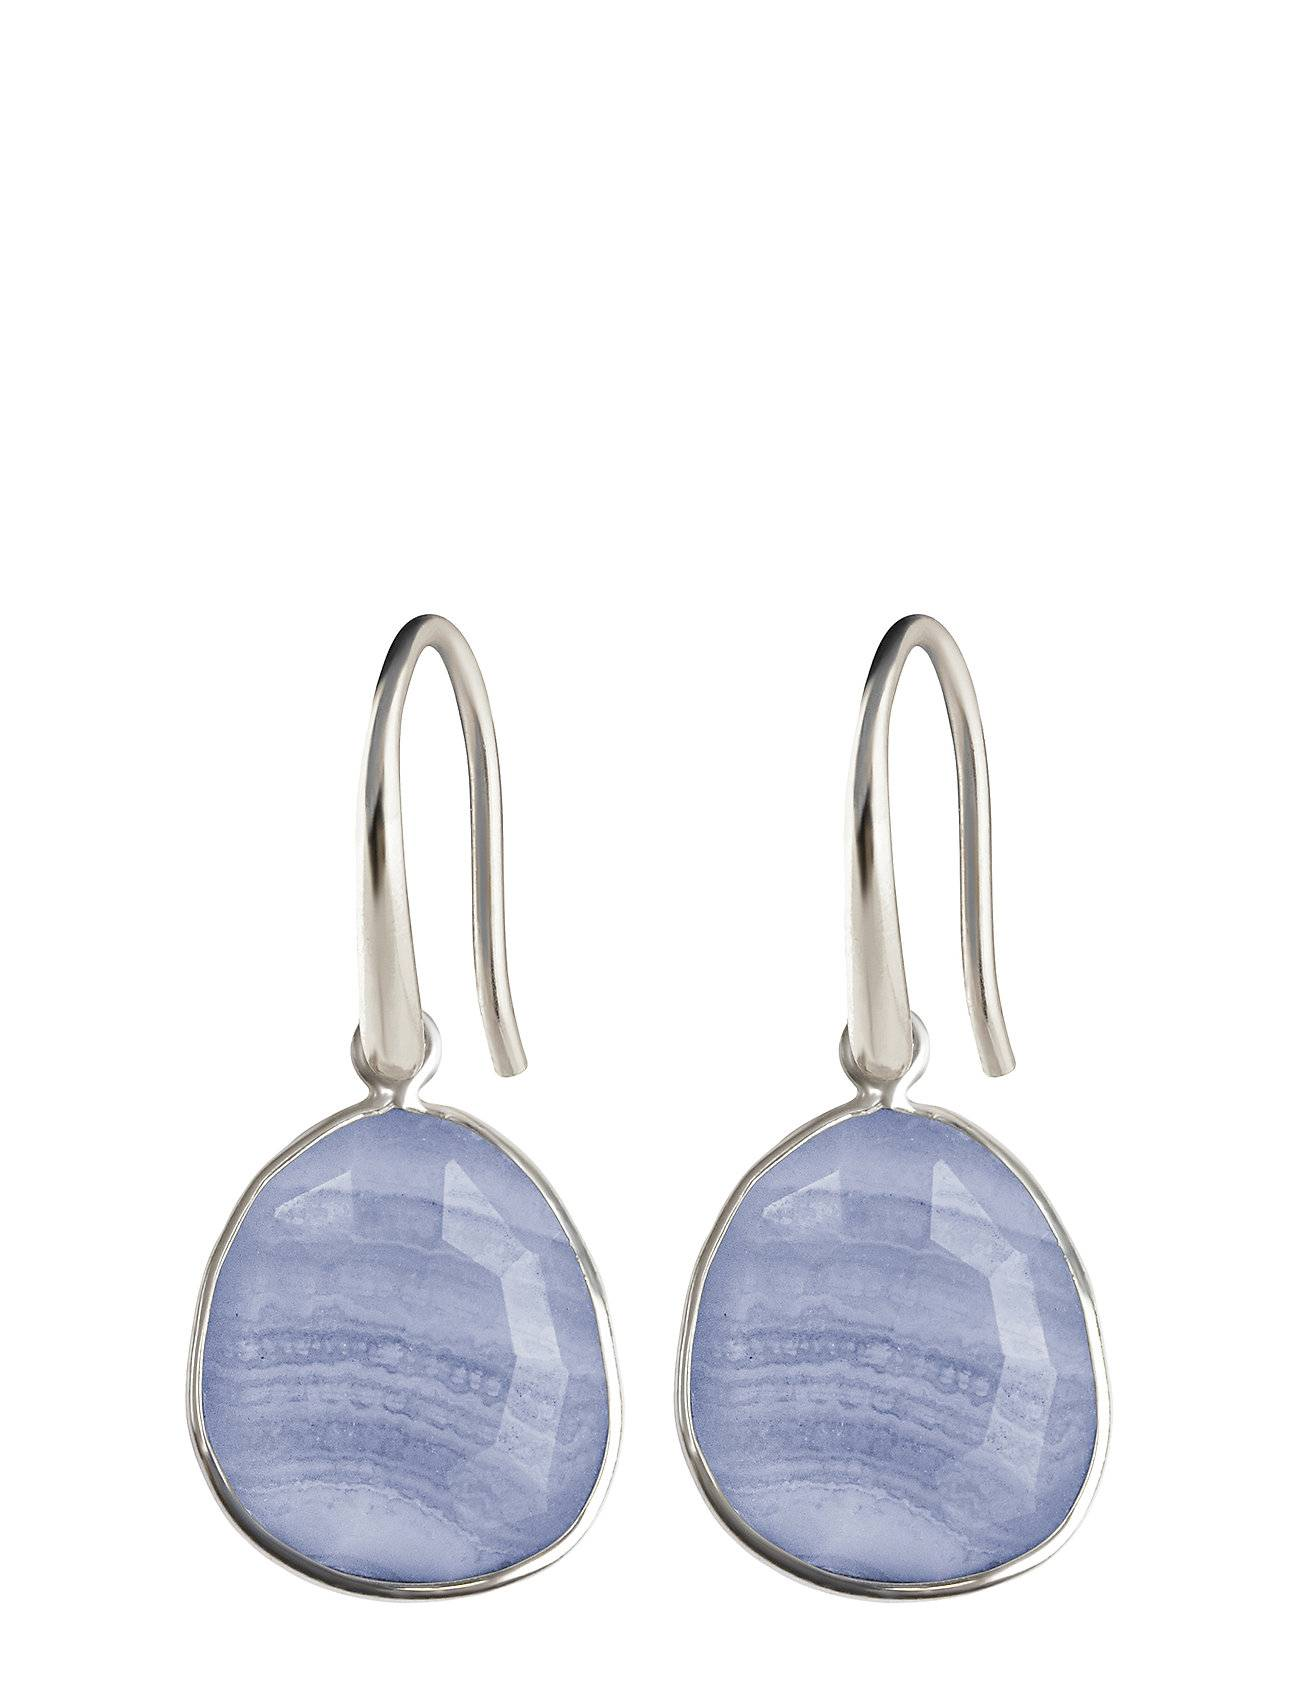 Syster P Glam Glam Earrings